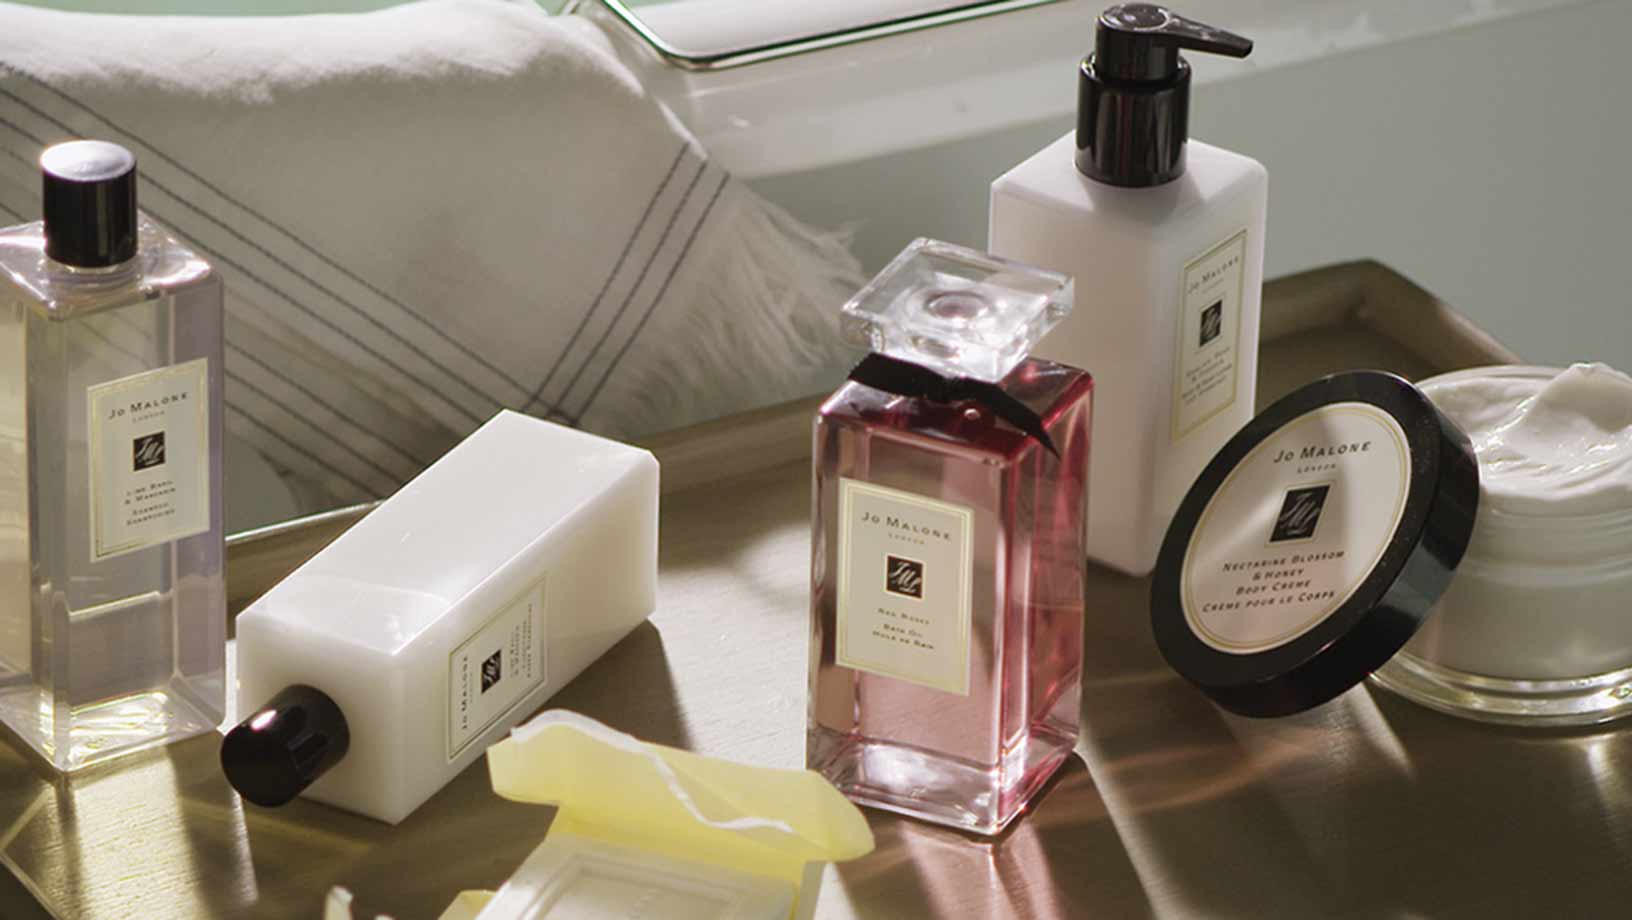 Five Jo Malone London products on a wooden side table including body wash, body cream and perfume